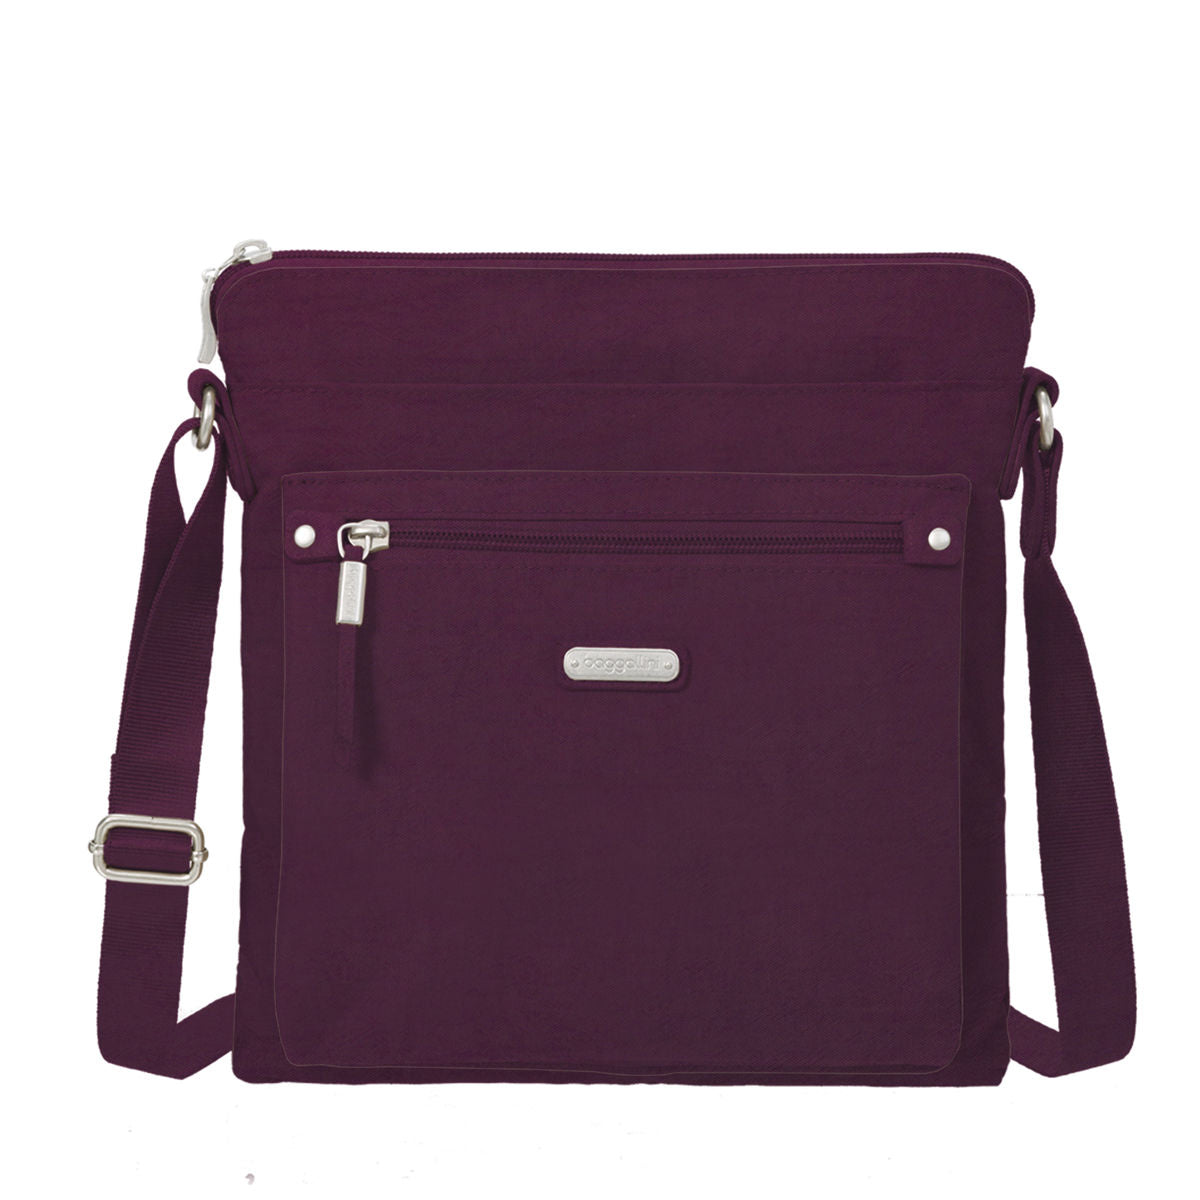 7258a789d0 Baggallini Go Bagg with RFID phone phone wristlet